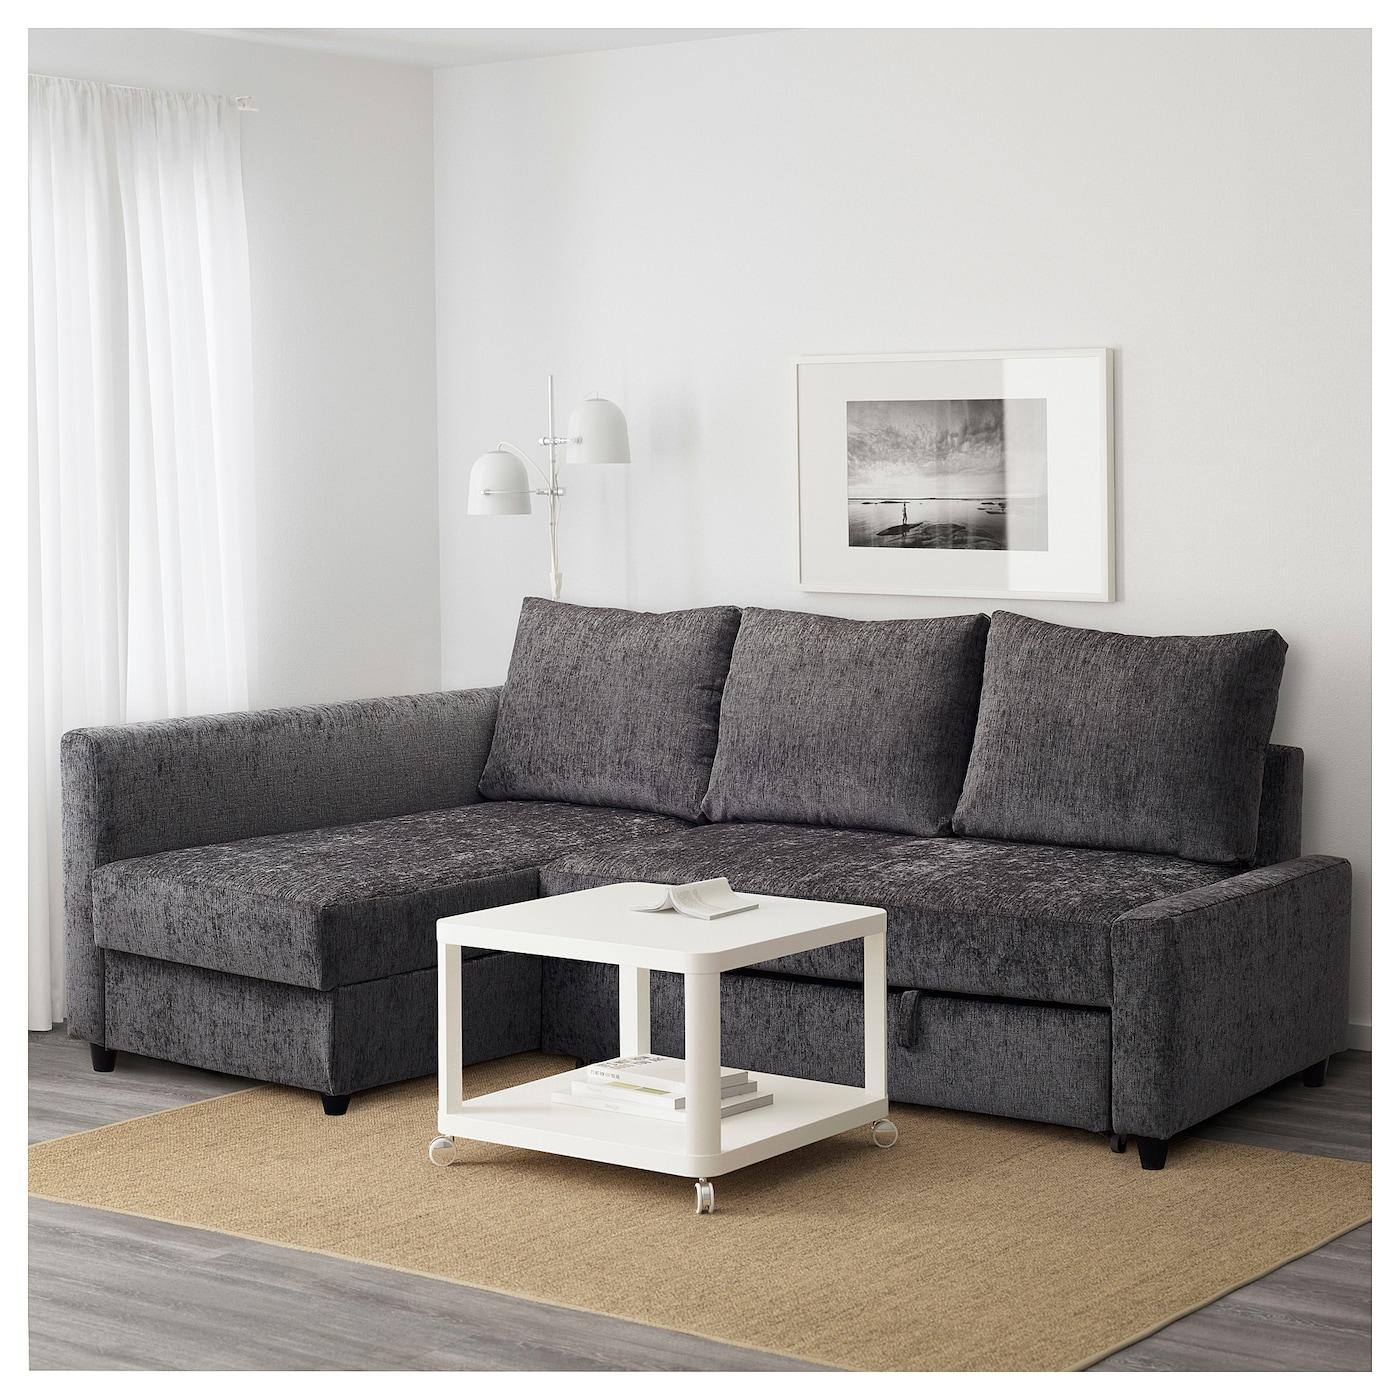 Friheten Corner Sofa Bed With Storage Dark Grey Ikea Sectional Sofas Pull Out Beds